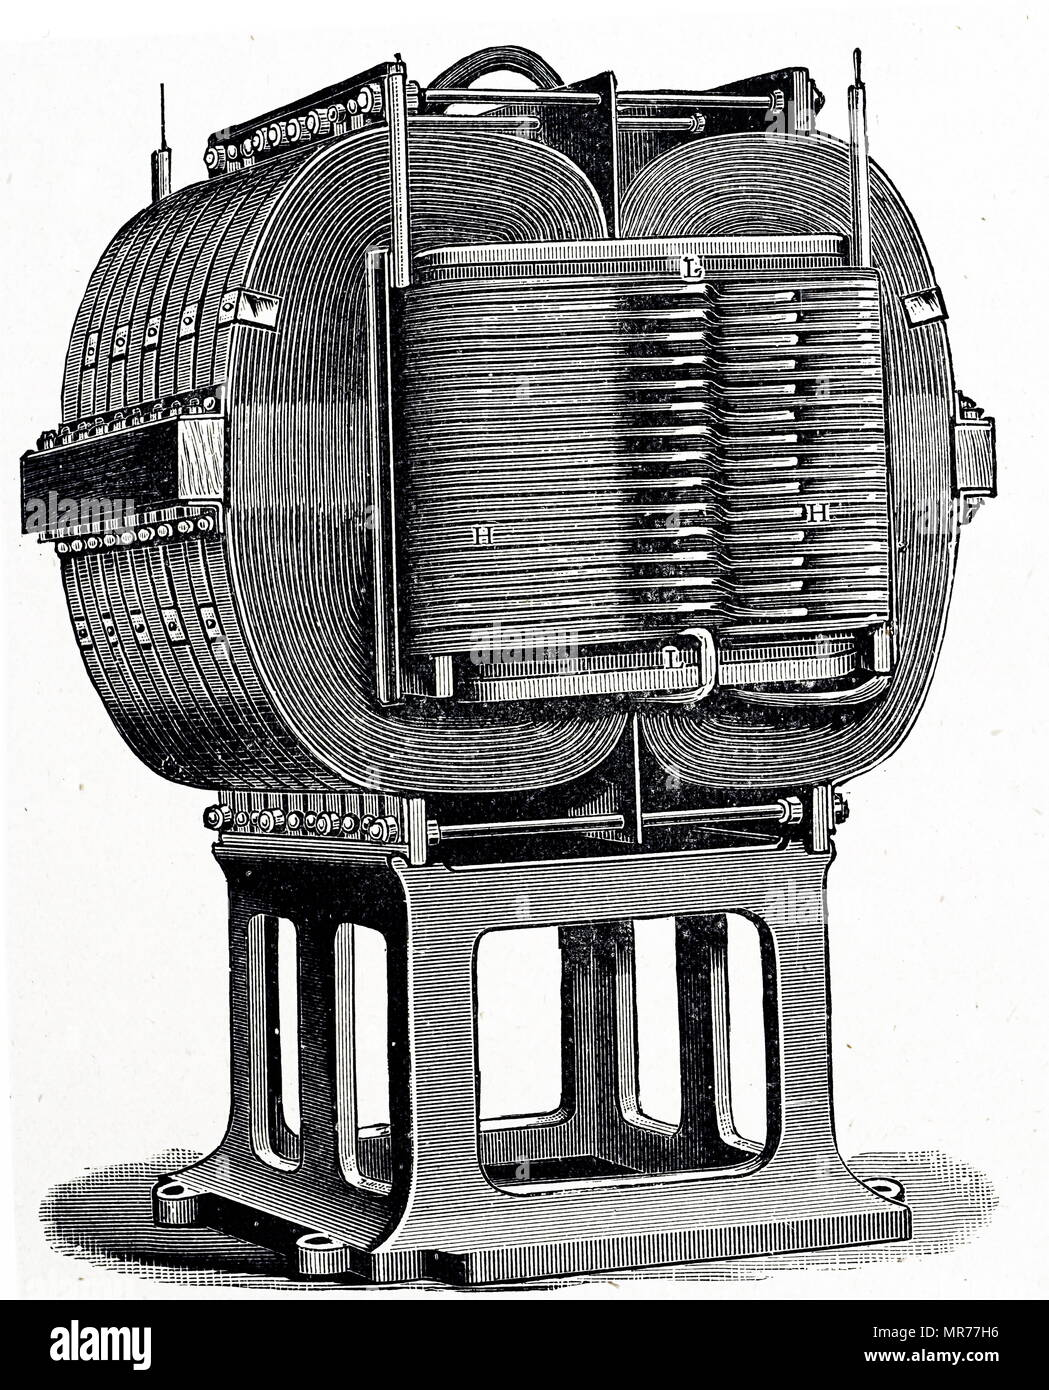 Engraving depicting Ferranti's 150 hp transformer used in London sub-stations. Dated 20th century - Stock Image